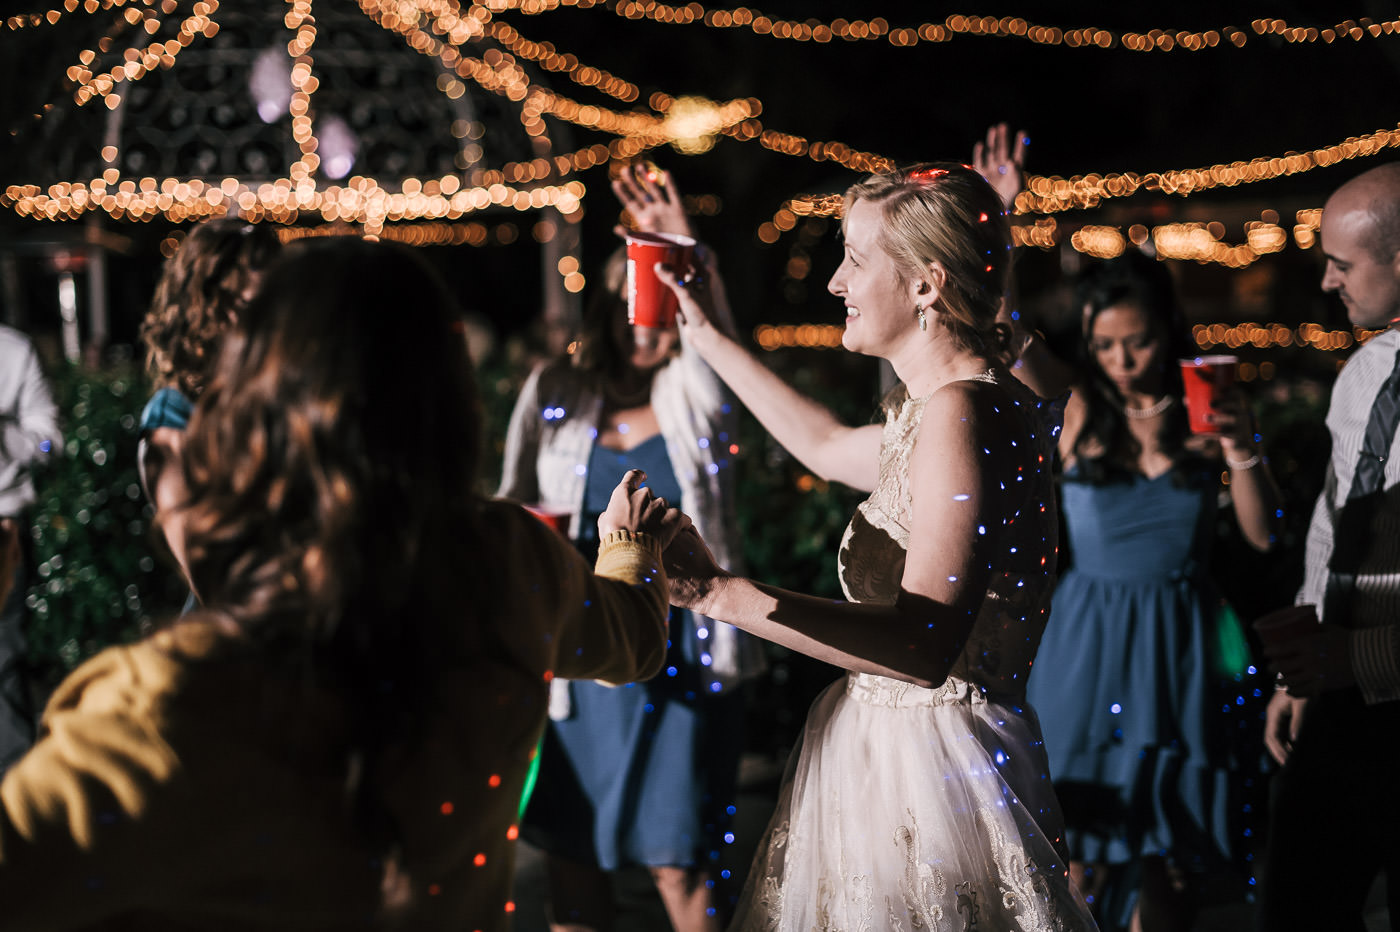 Bride celebrates with her guests under the twinkling lights of the whispering oaks terrace